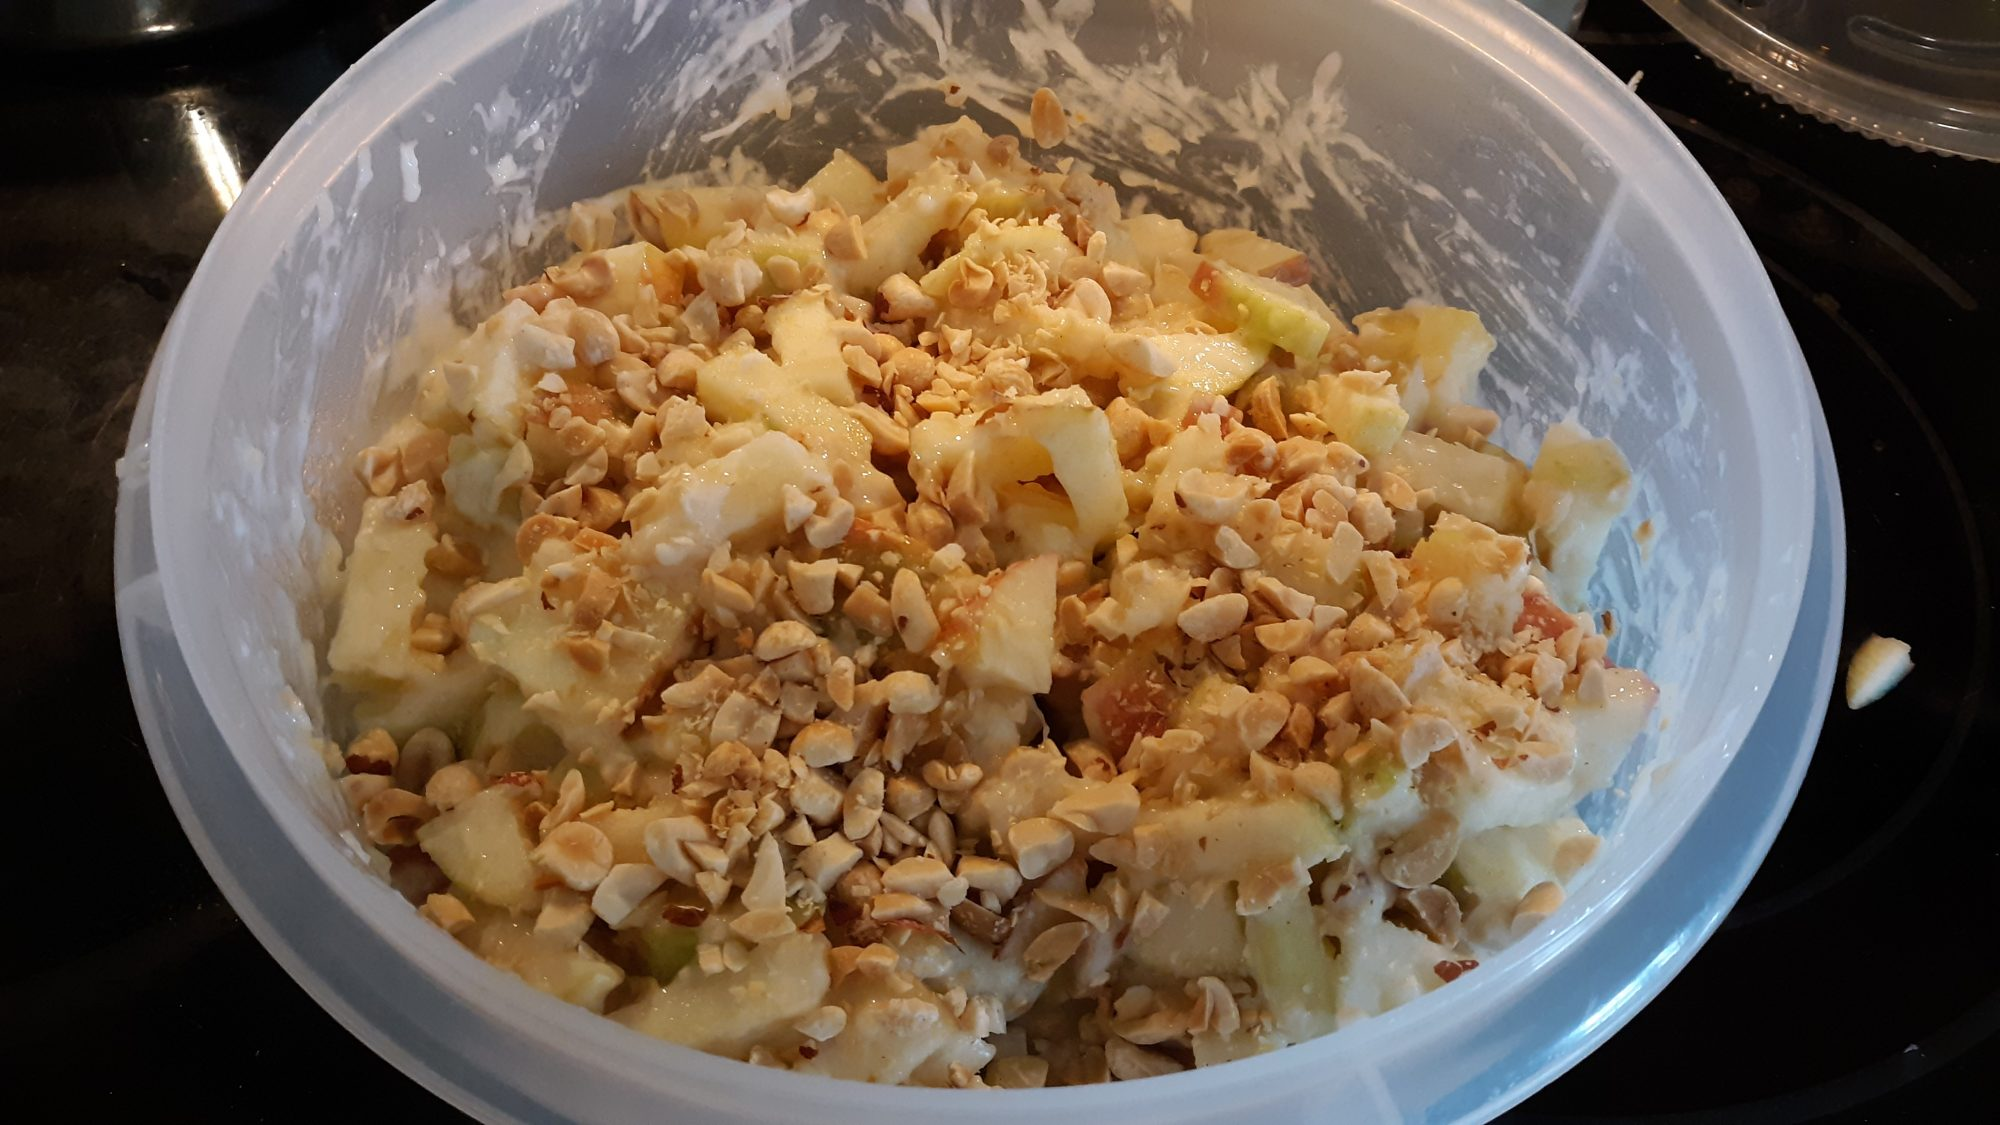 bowl of homemade Candy Apple Salad recipe with chopped apple, pineapple, and peanuts